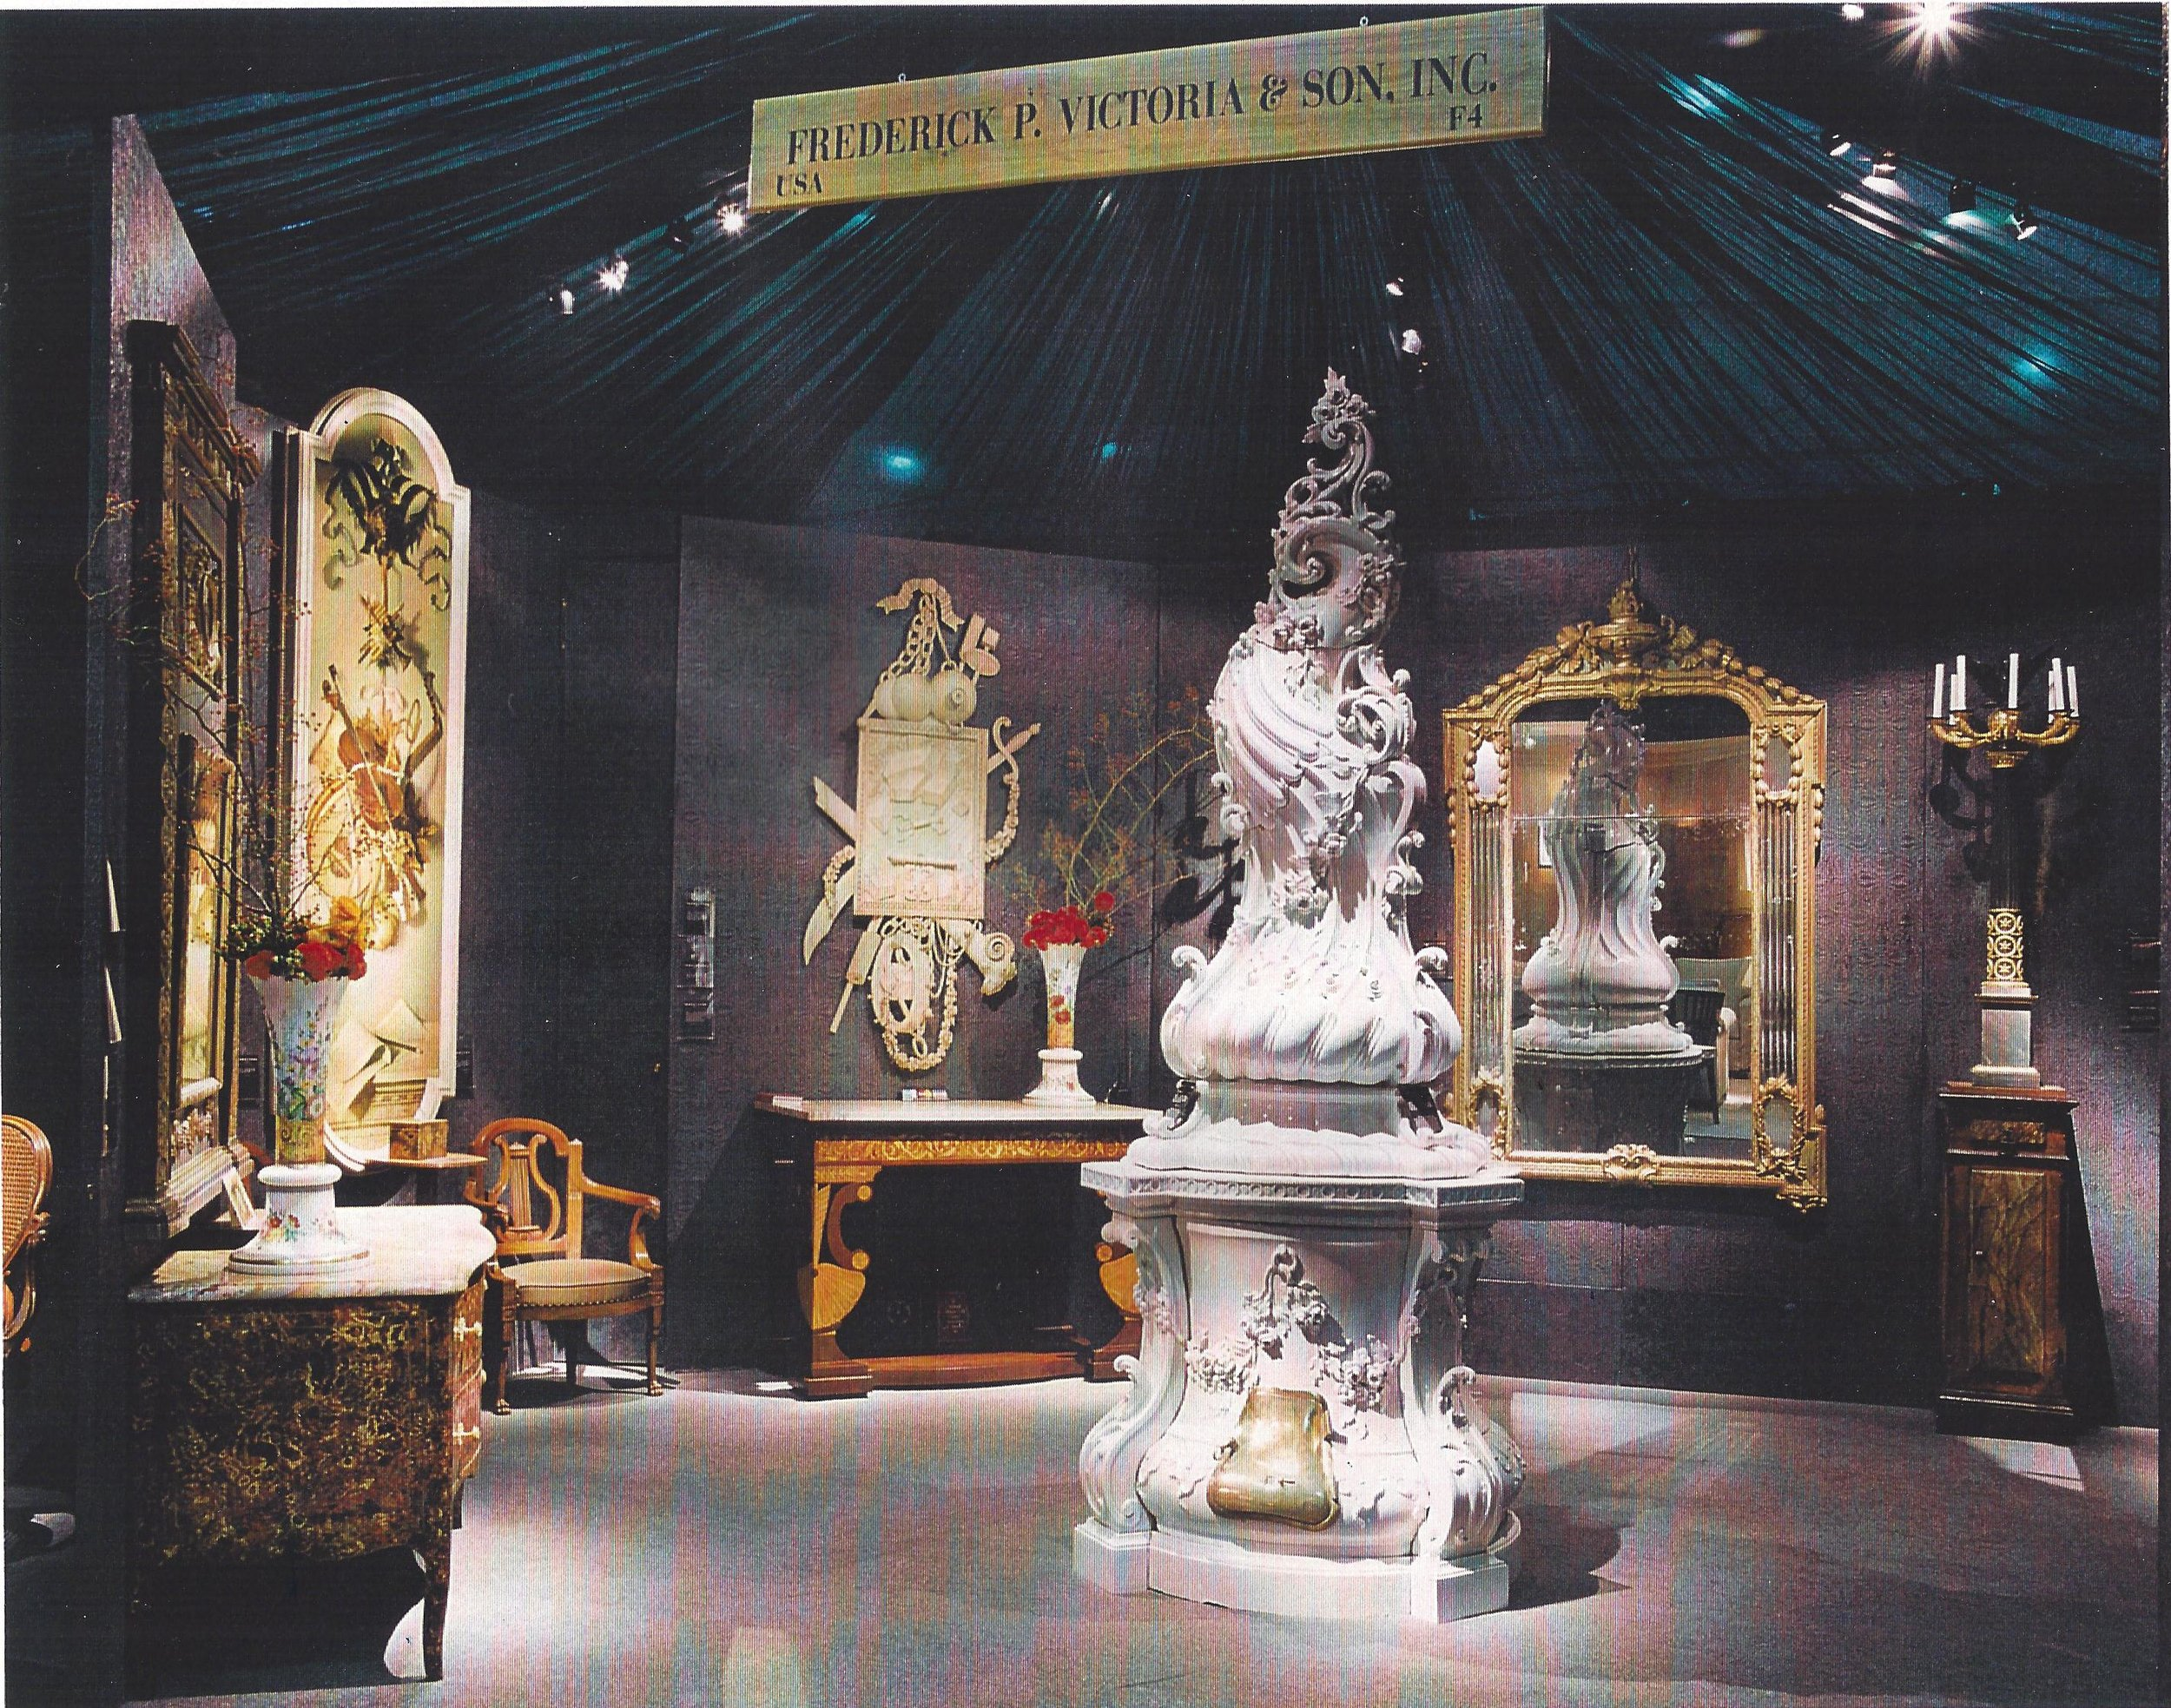 Frederick P. Victoria & Son, Inc.'s booth at the Winter Antique Show circa 1995